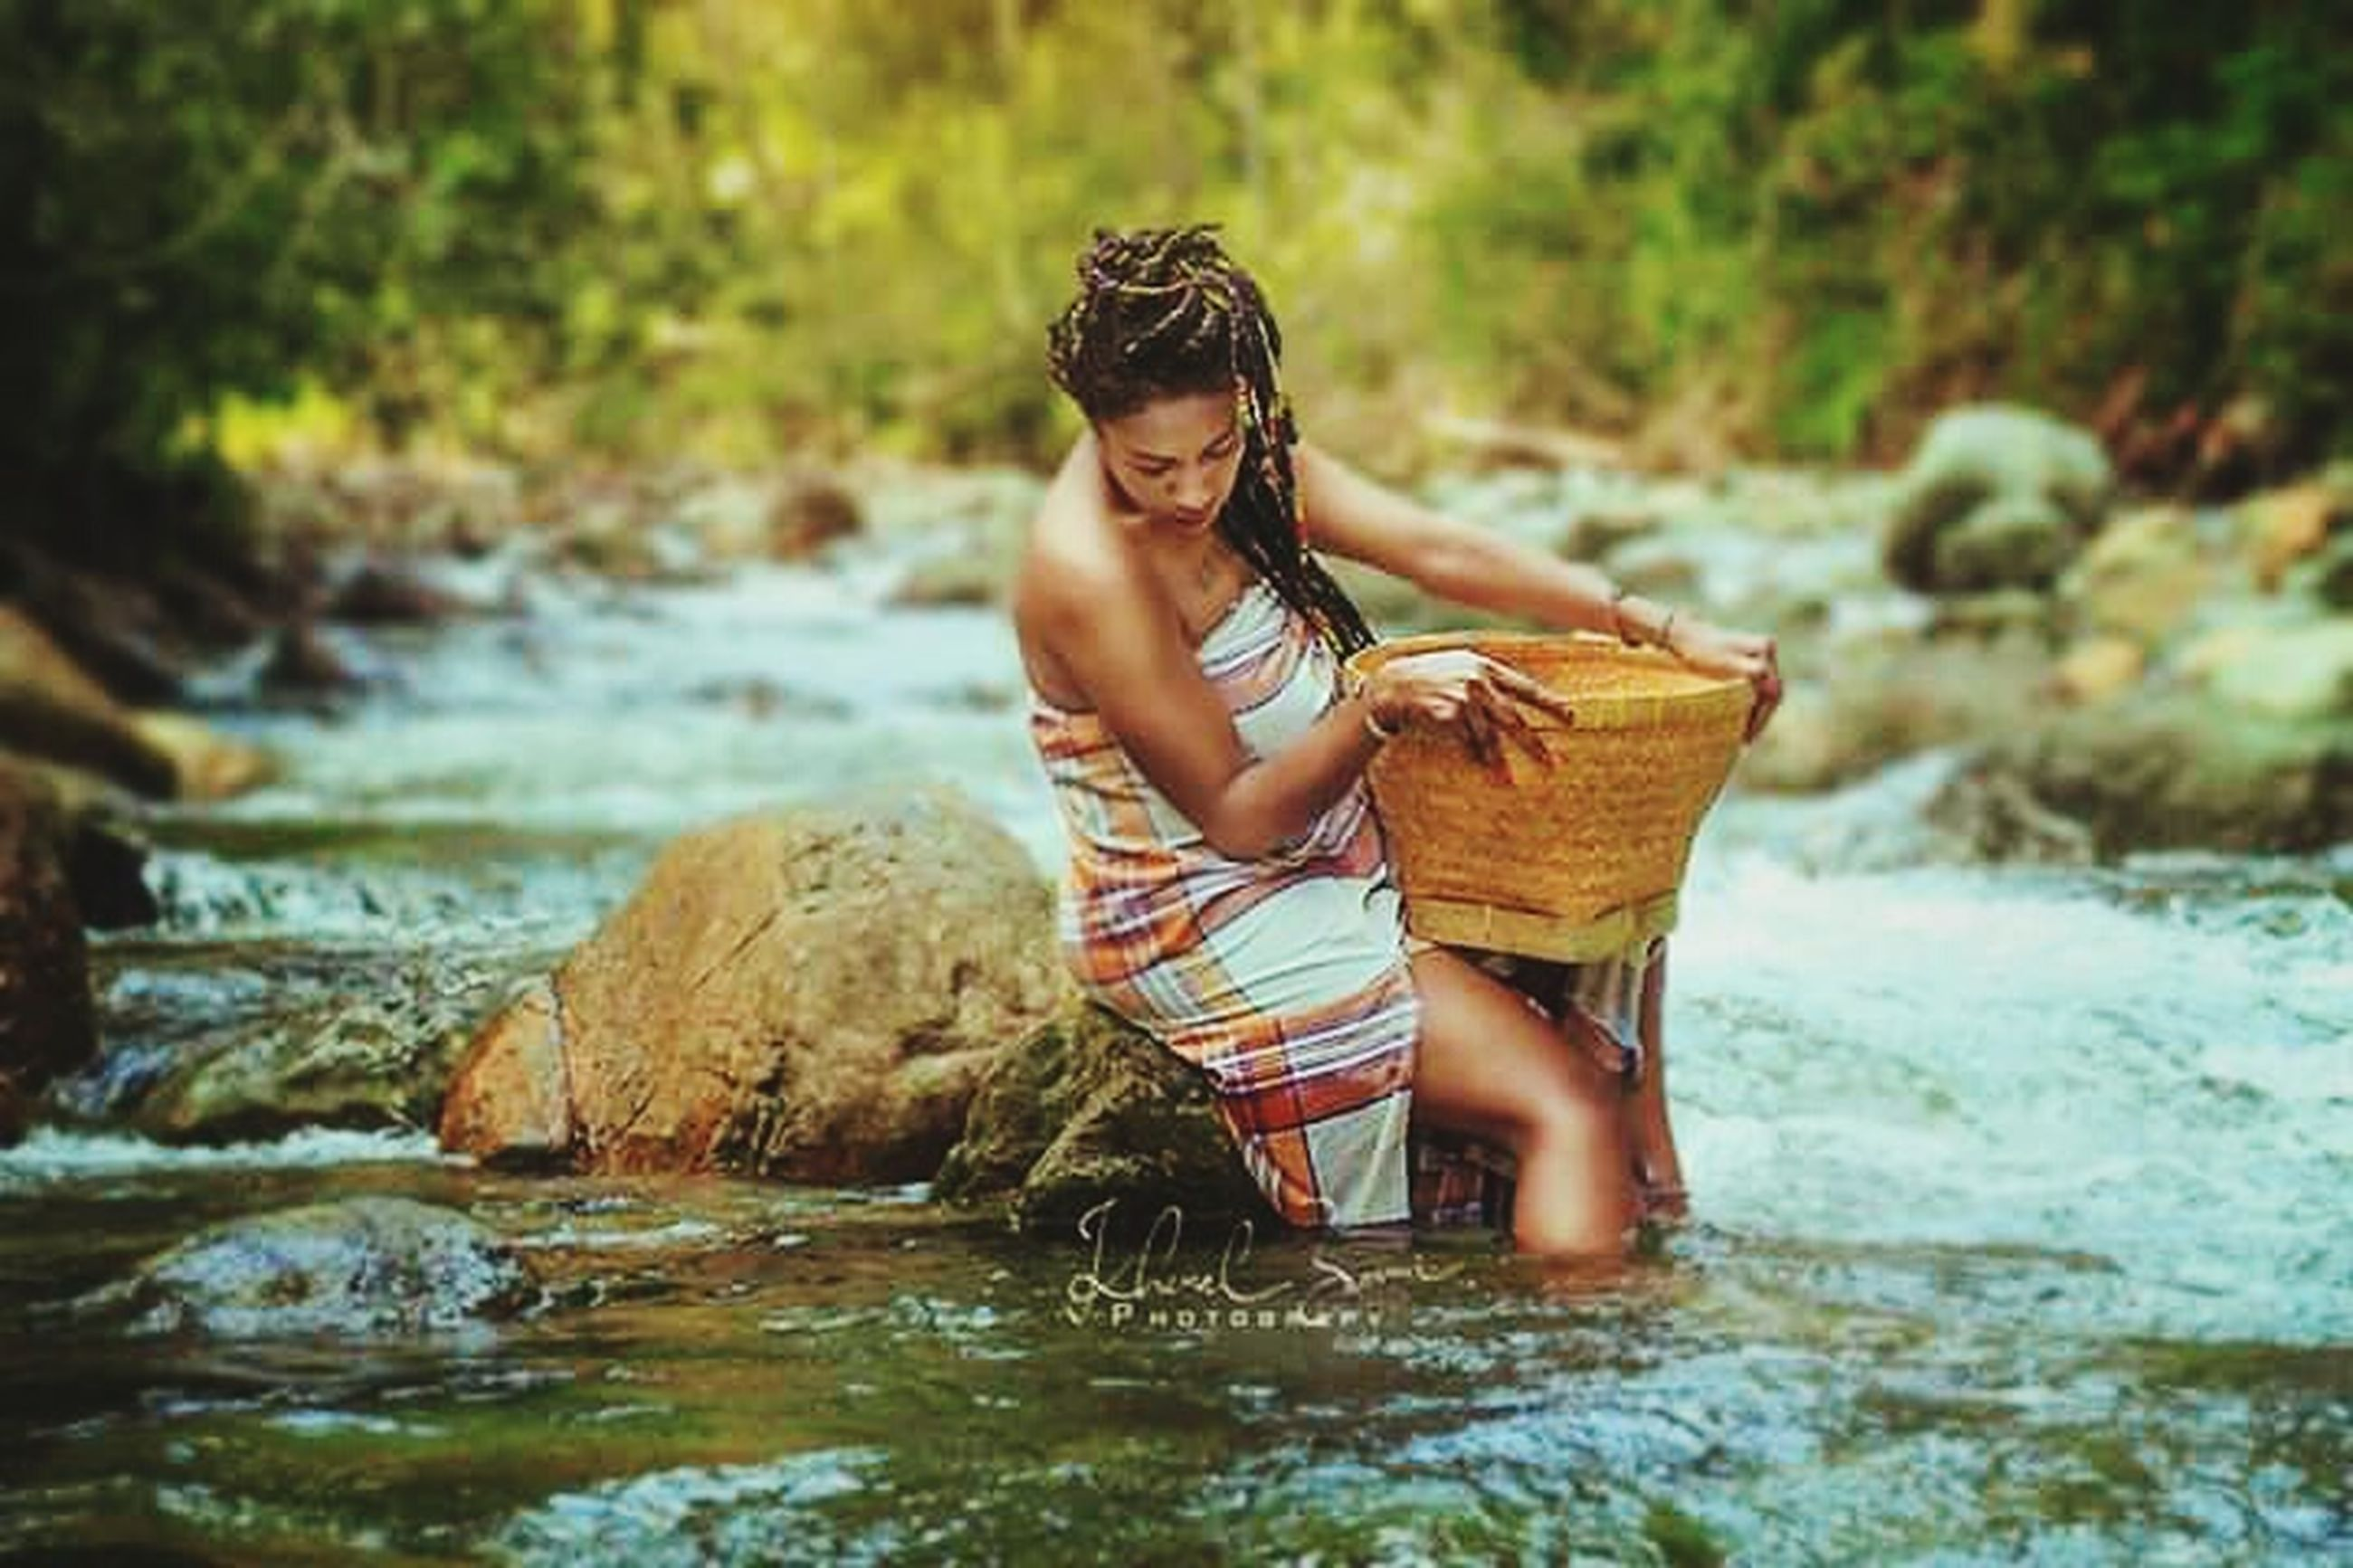 water, one person, real people, nature, full length, casual clothing, container, river, basket, front view, women, day, young adult, young women, lifestyles, sitting, outdoors, stream - flowing water, hairstyle